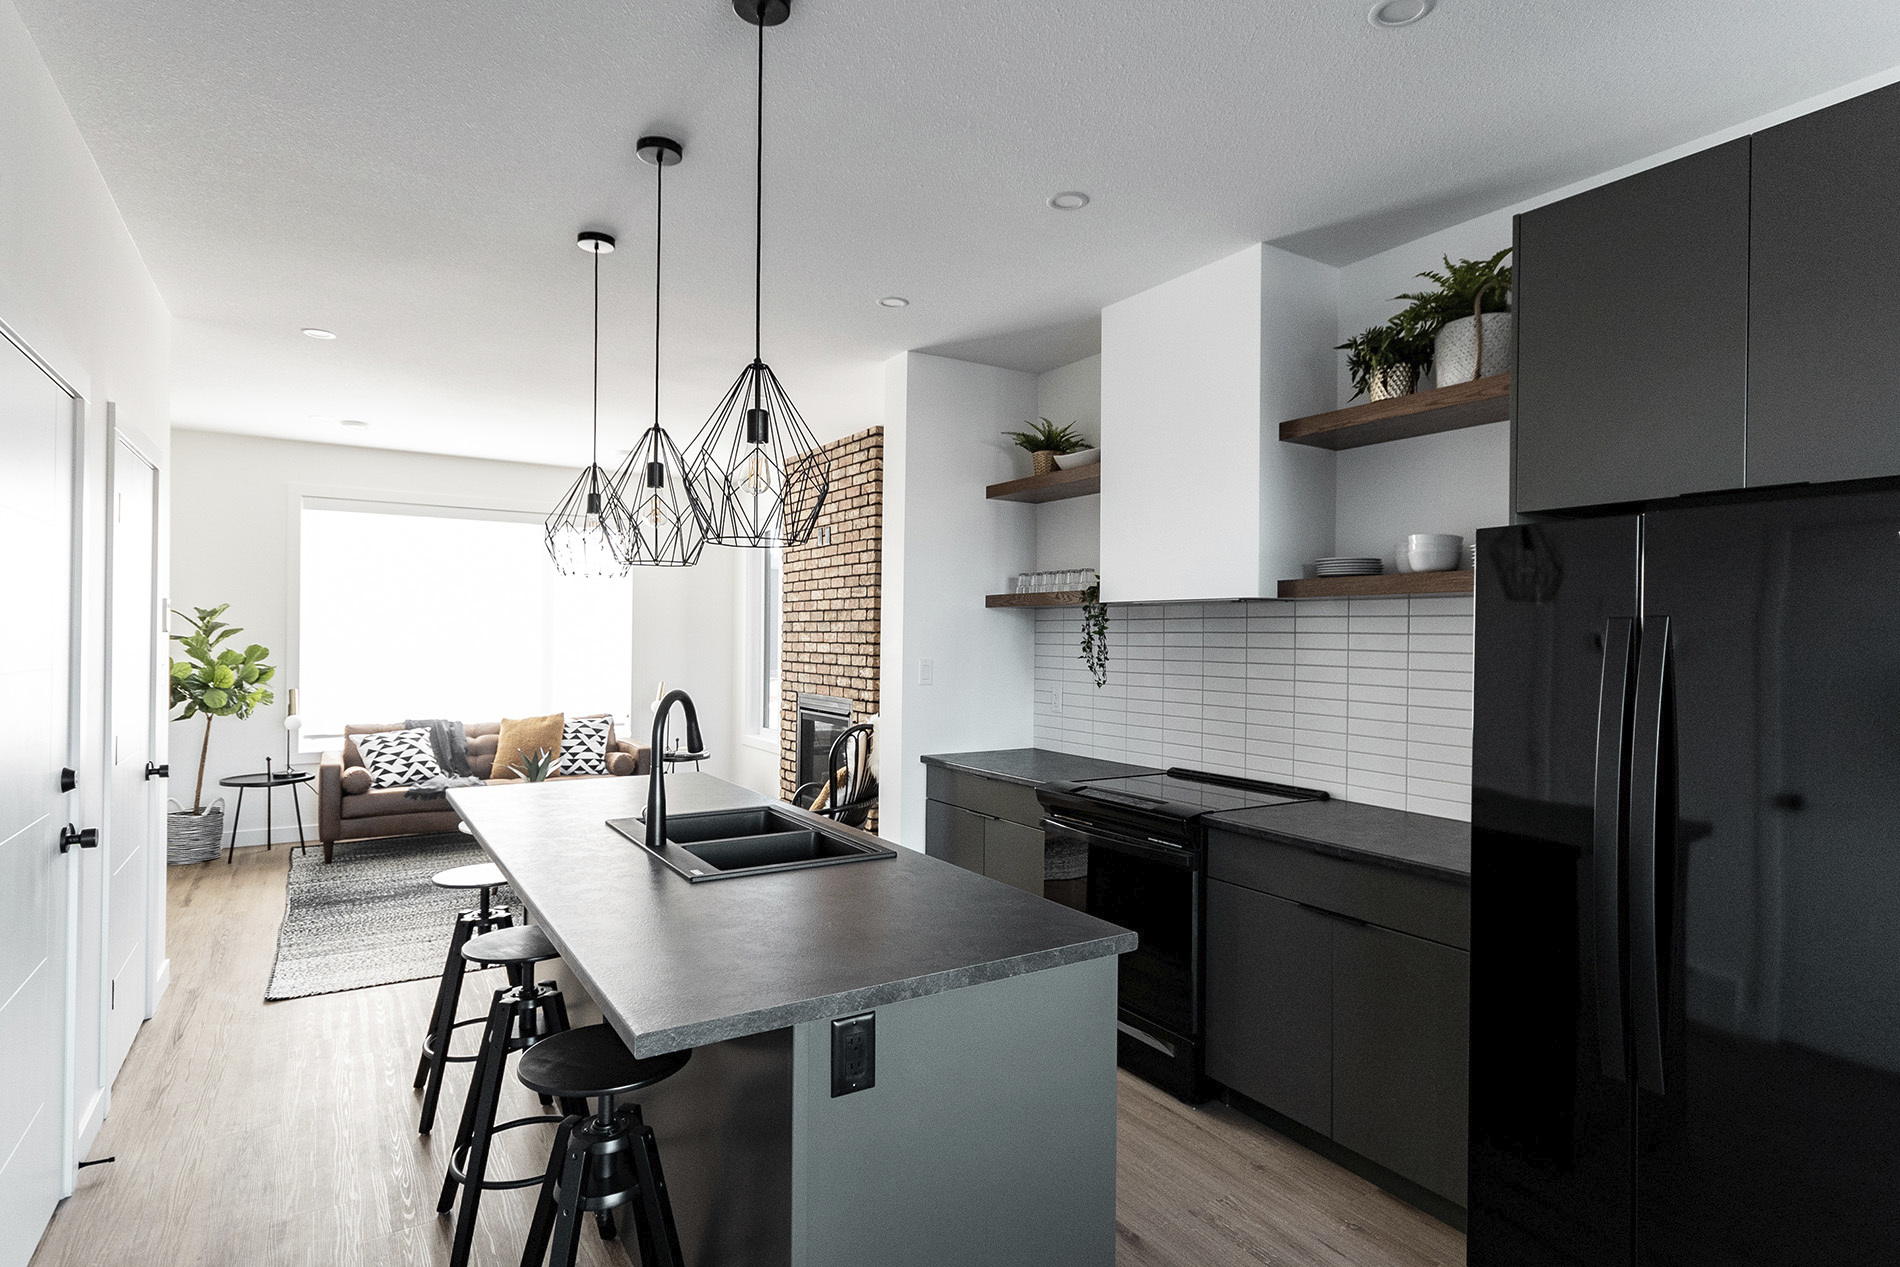 custom kitchen with black finishes white walls with minimalist shelving and custom light fixtures over island